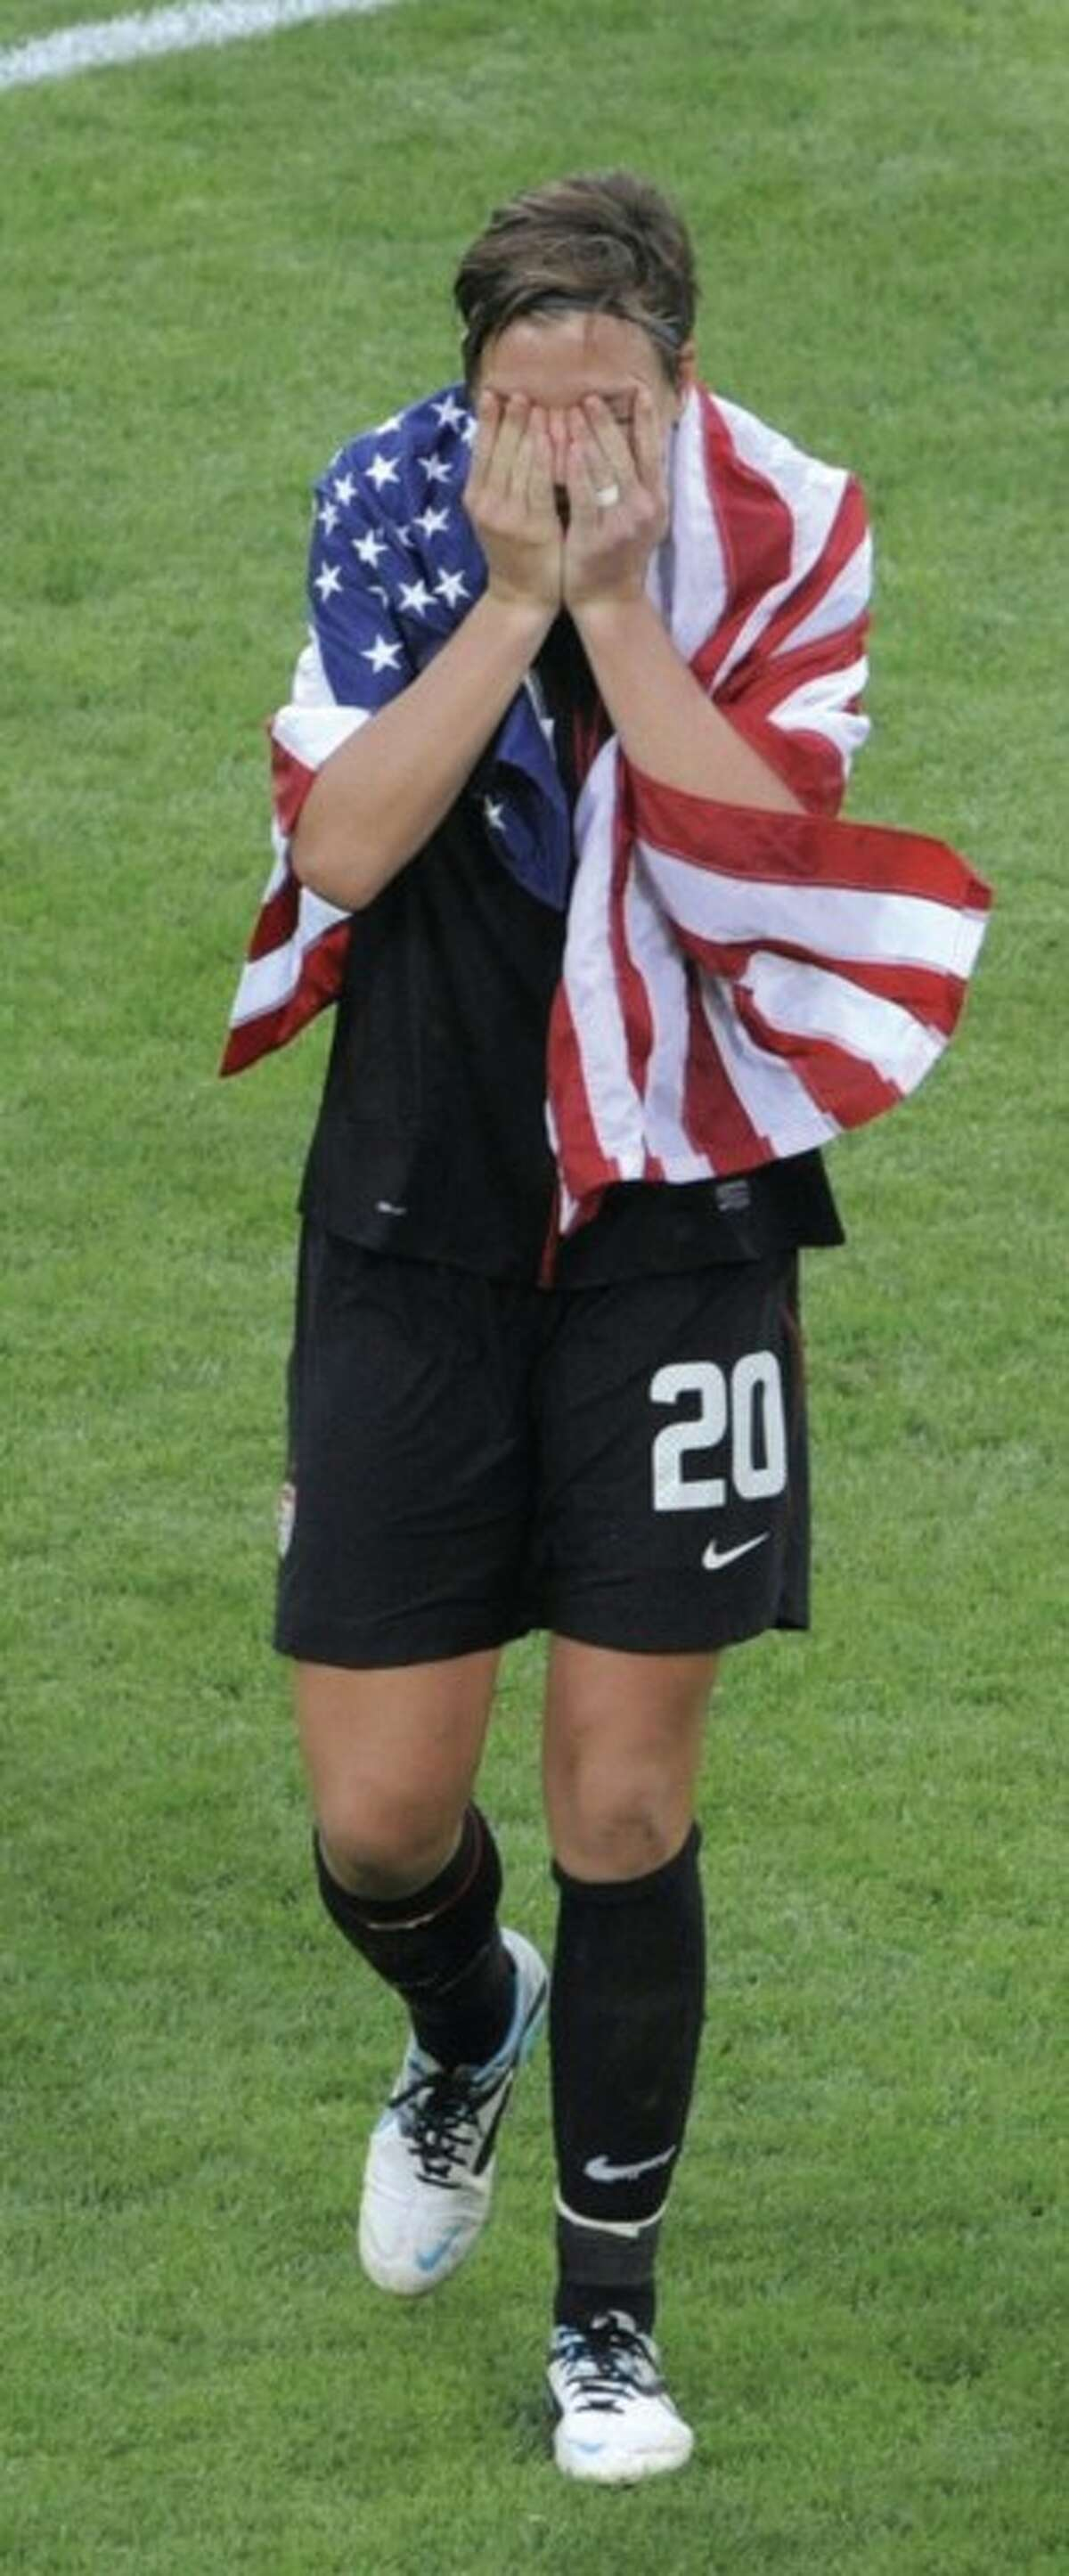 United States' Abby Wambach is wrapped in a US flag after her team won in a penalty shootout during the quarterfinal match between Brazil and the United States at the Women?•s Soccer World Cup in Dresden, Germany, Sunday, July 10, 2011. (AP Photo/Jens Meyer)